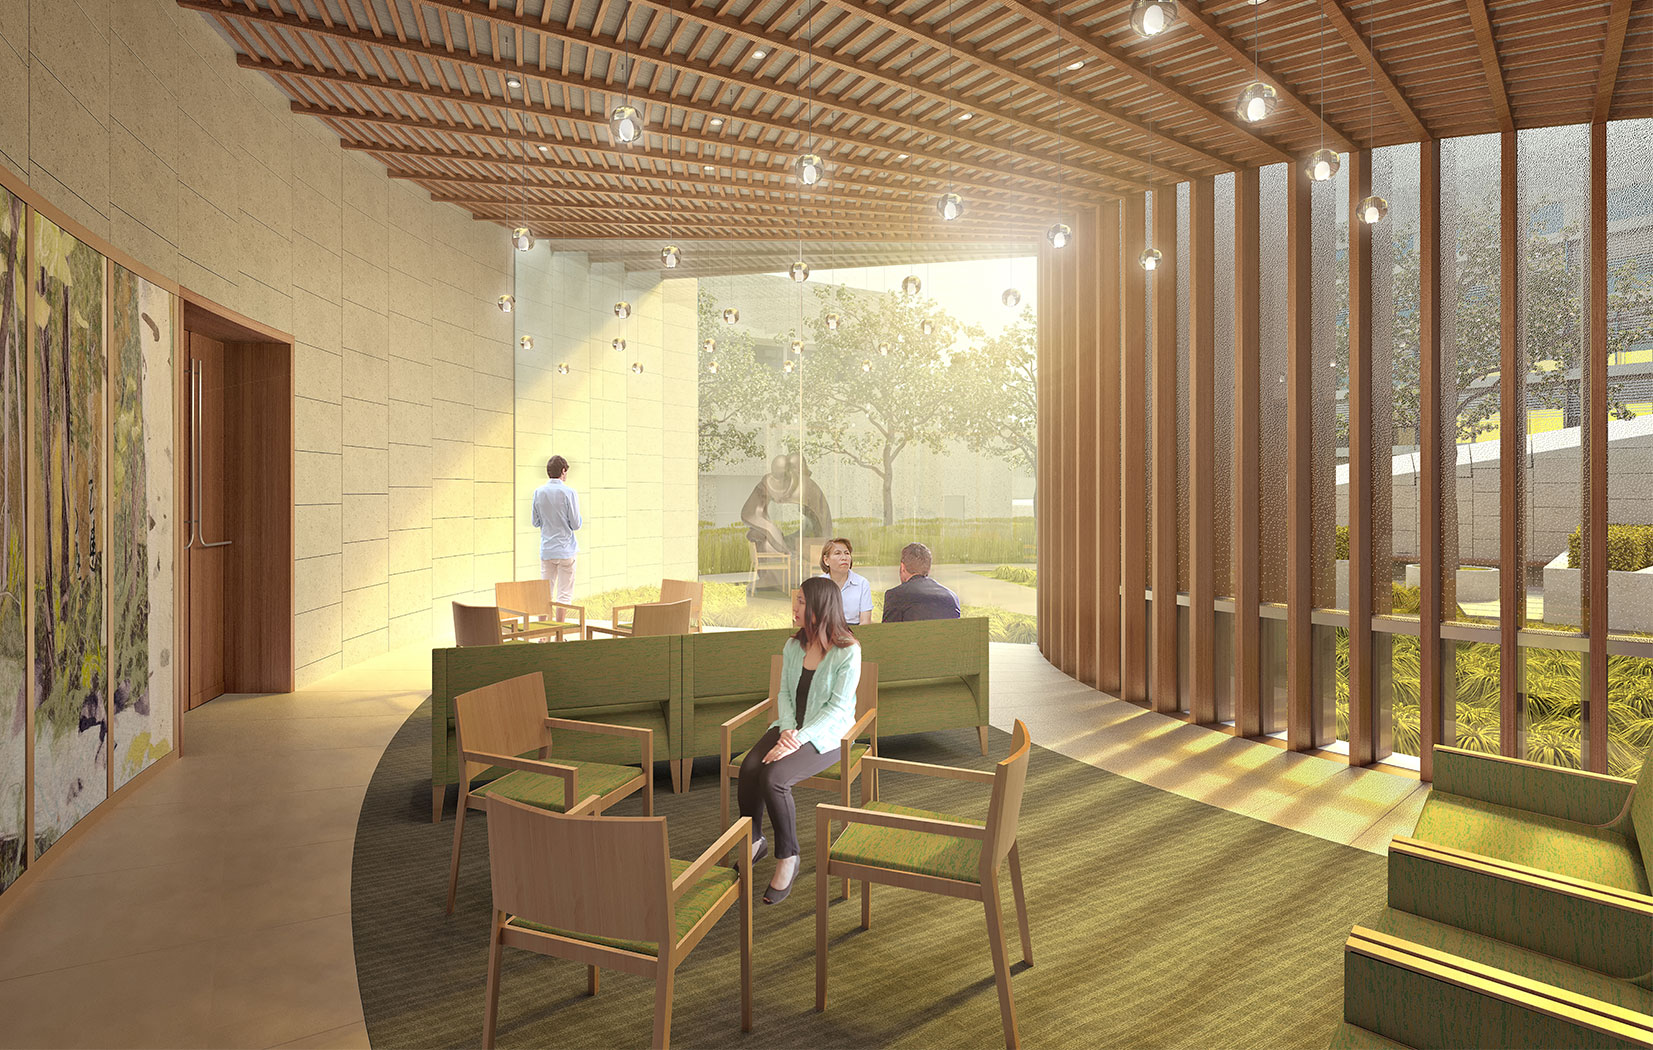 Children's hospital aims high for medical care, design and